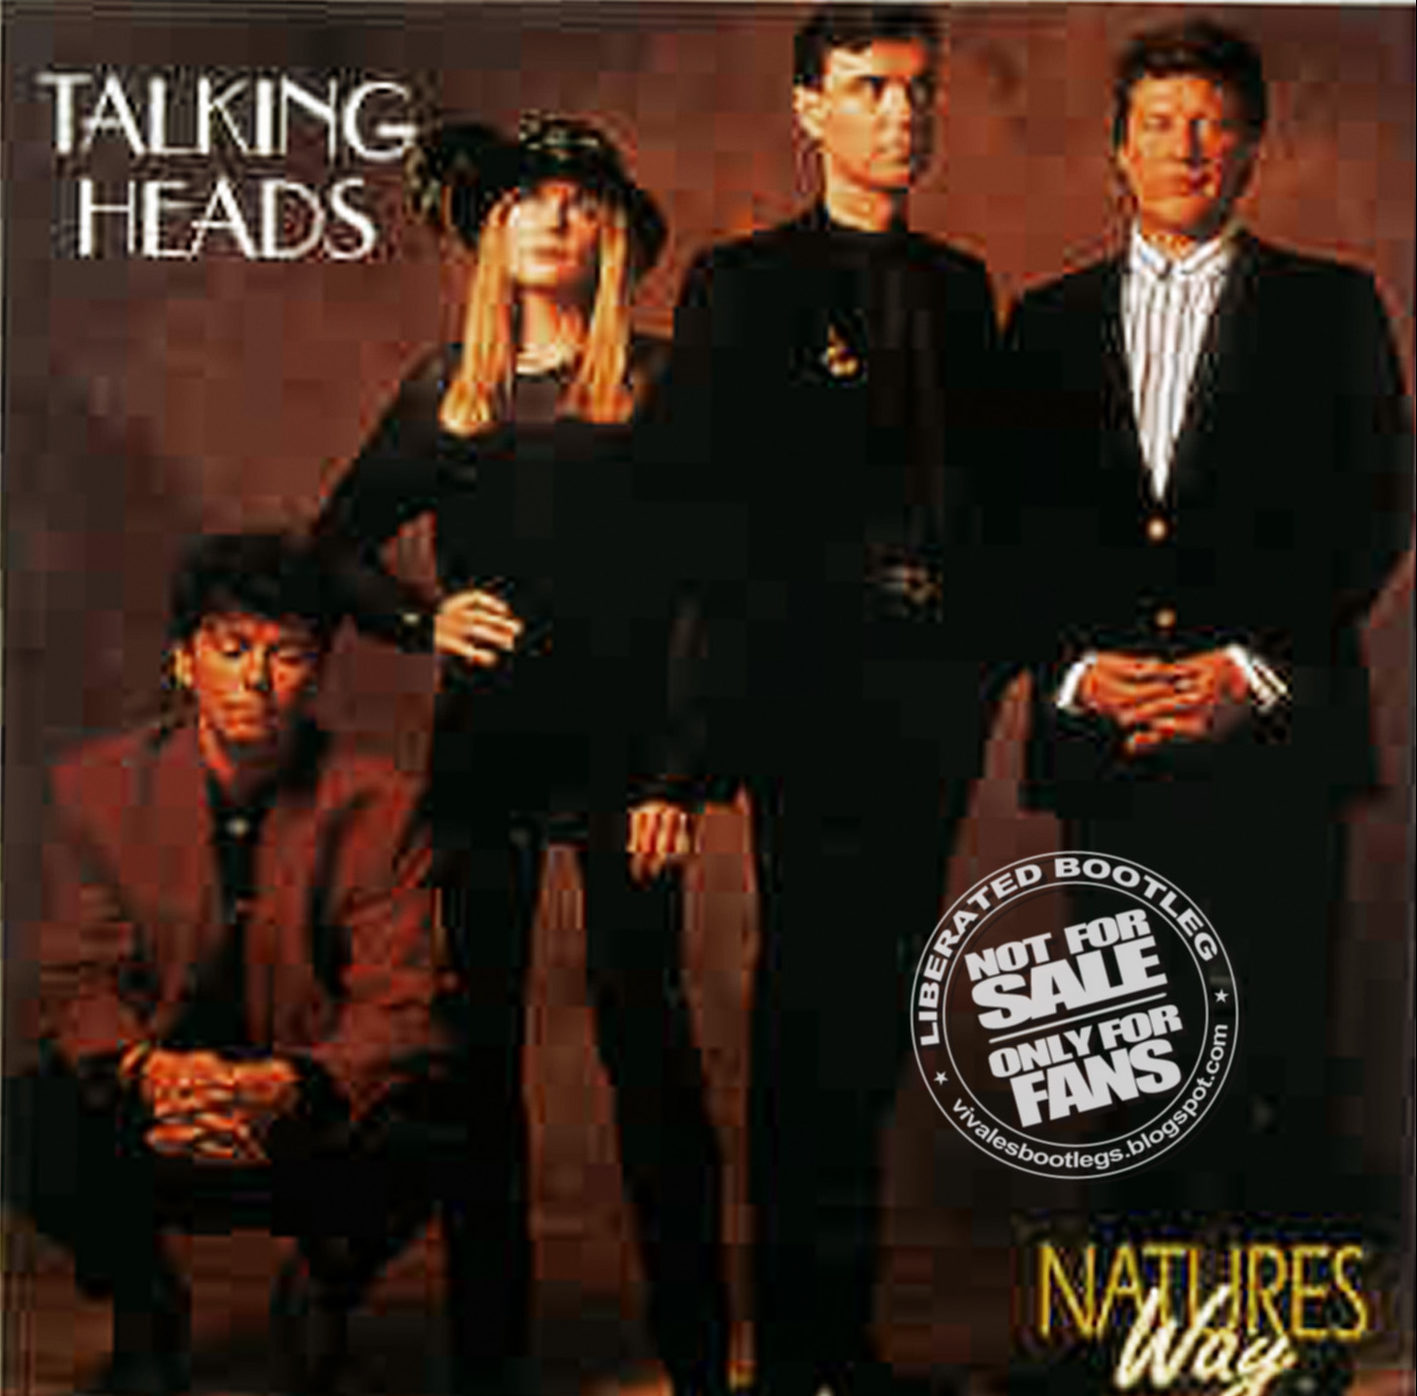 Talking heads thank you for sending me an angel